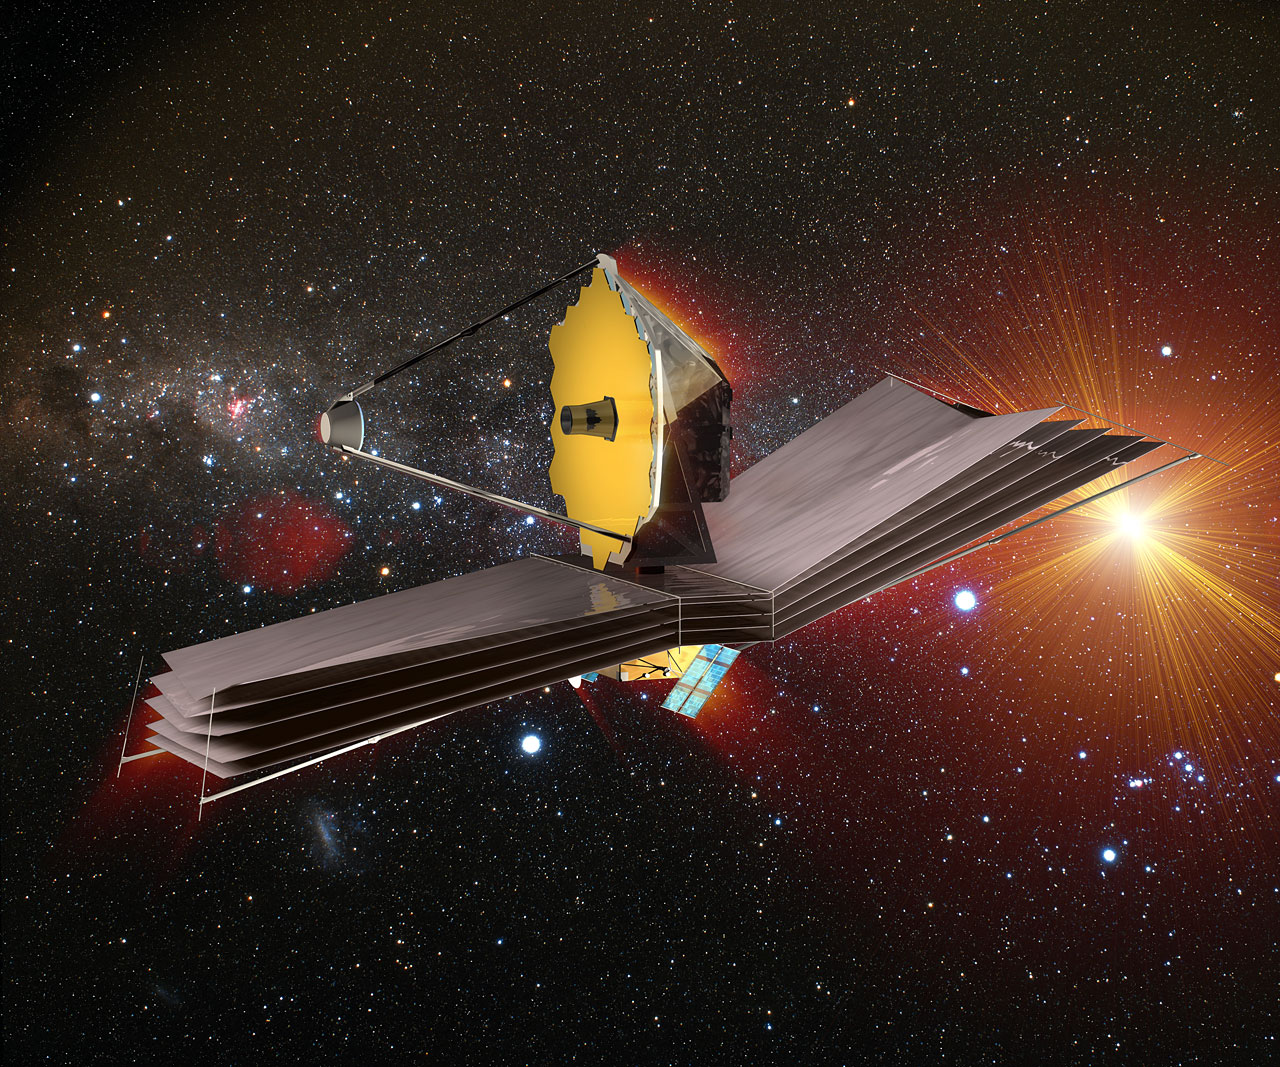 WFIRST: Next Decade's Space Telescope